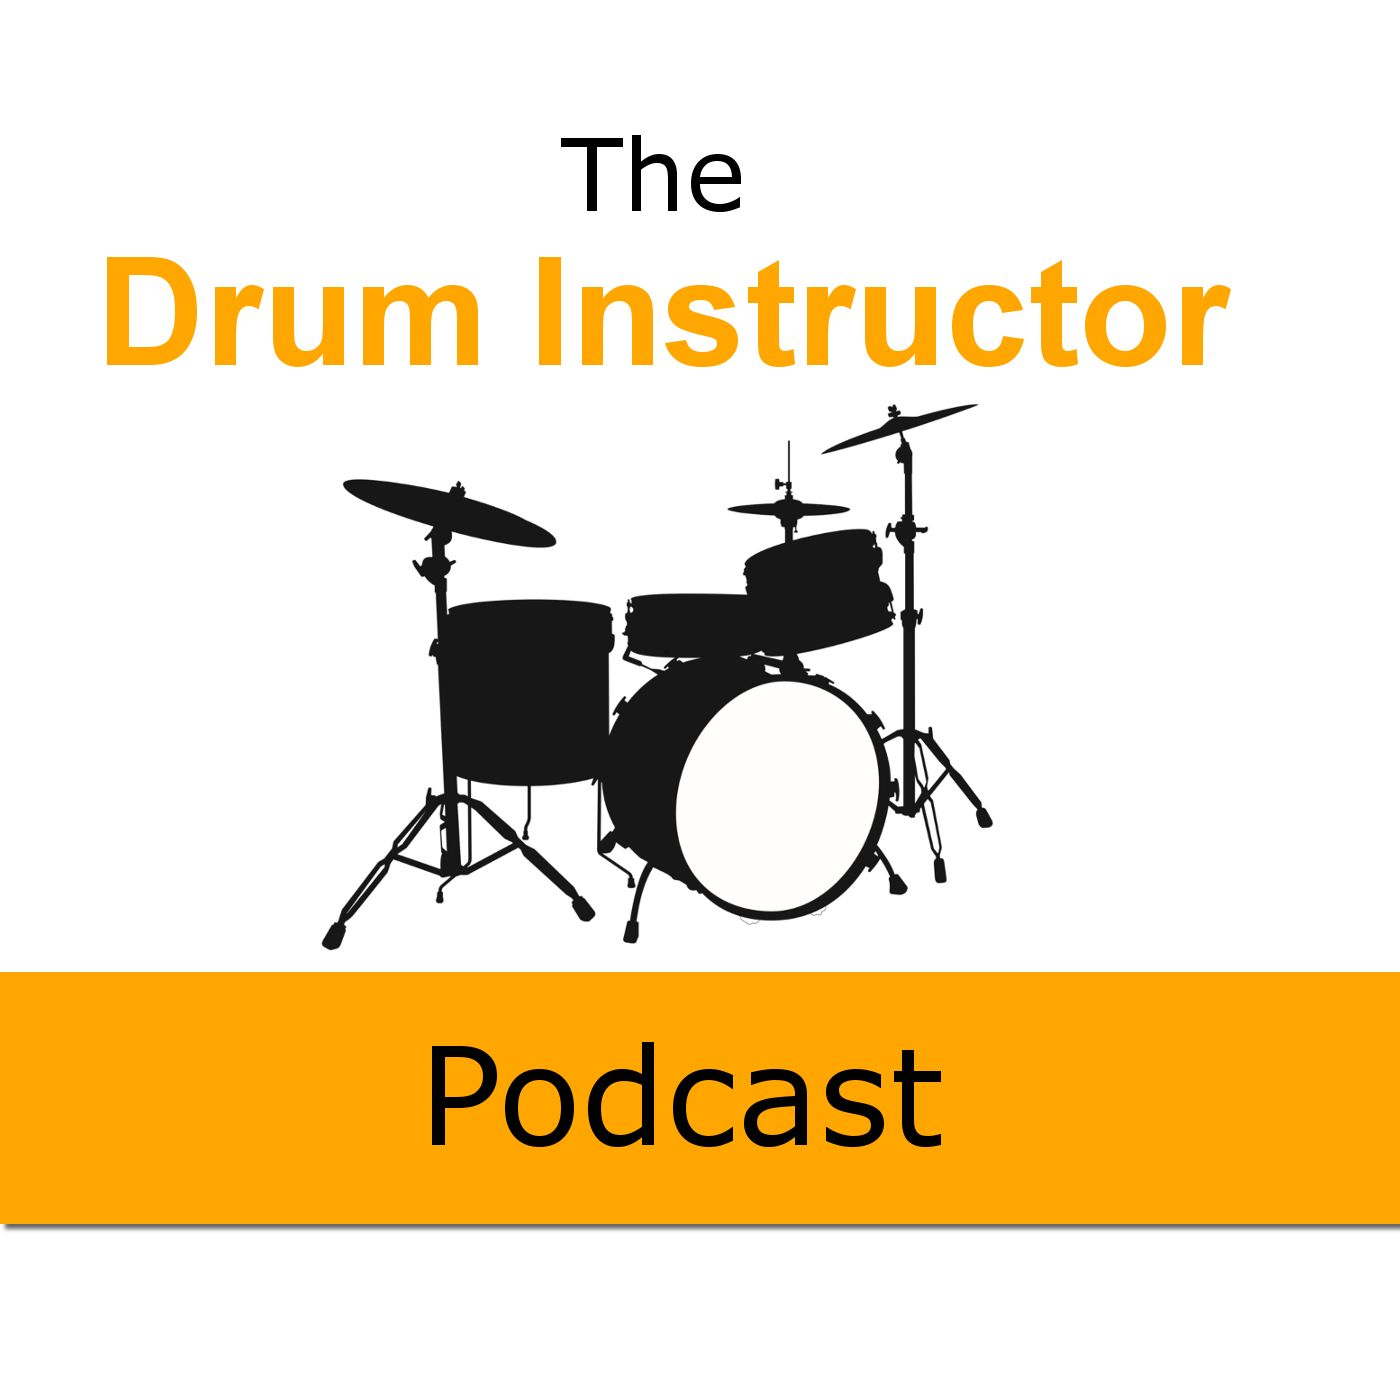 Drum Instructor Podcast